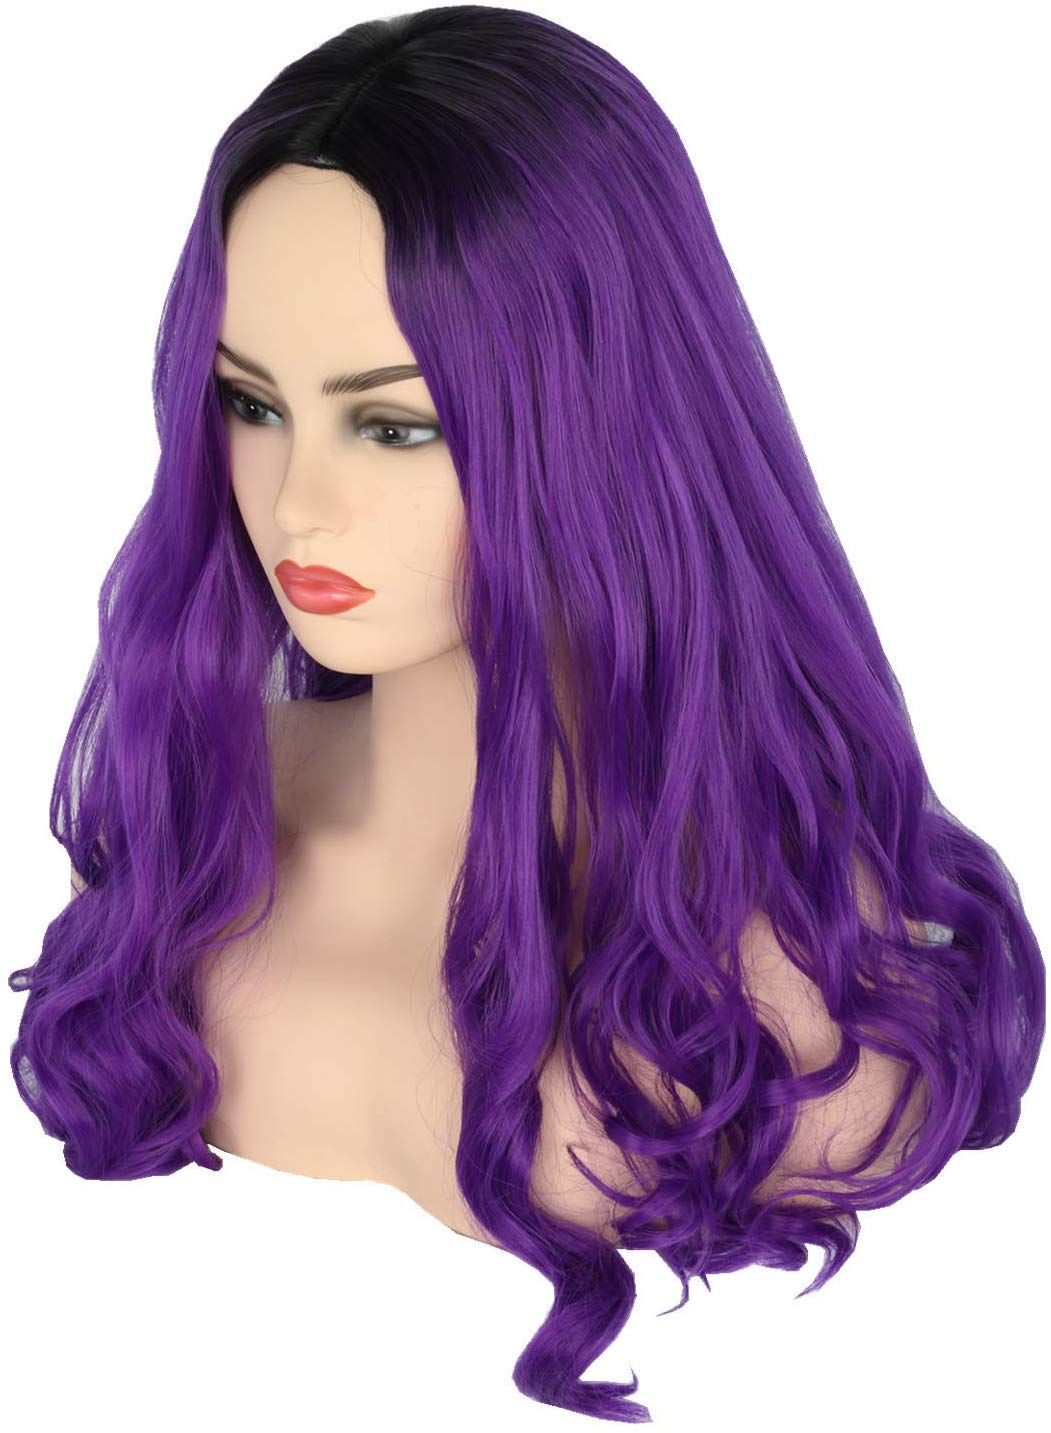 Topcosplay Mal Wig Inspired By Descendants 3 Kids Girls Purple Wig 15 Long Curly Costume Wig For Party Halloween Fancy Dress Hair Stail Wigs Hair Dye Colors